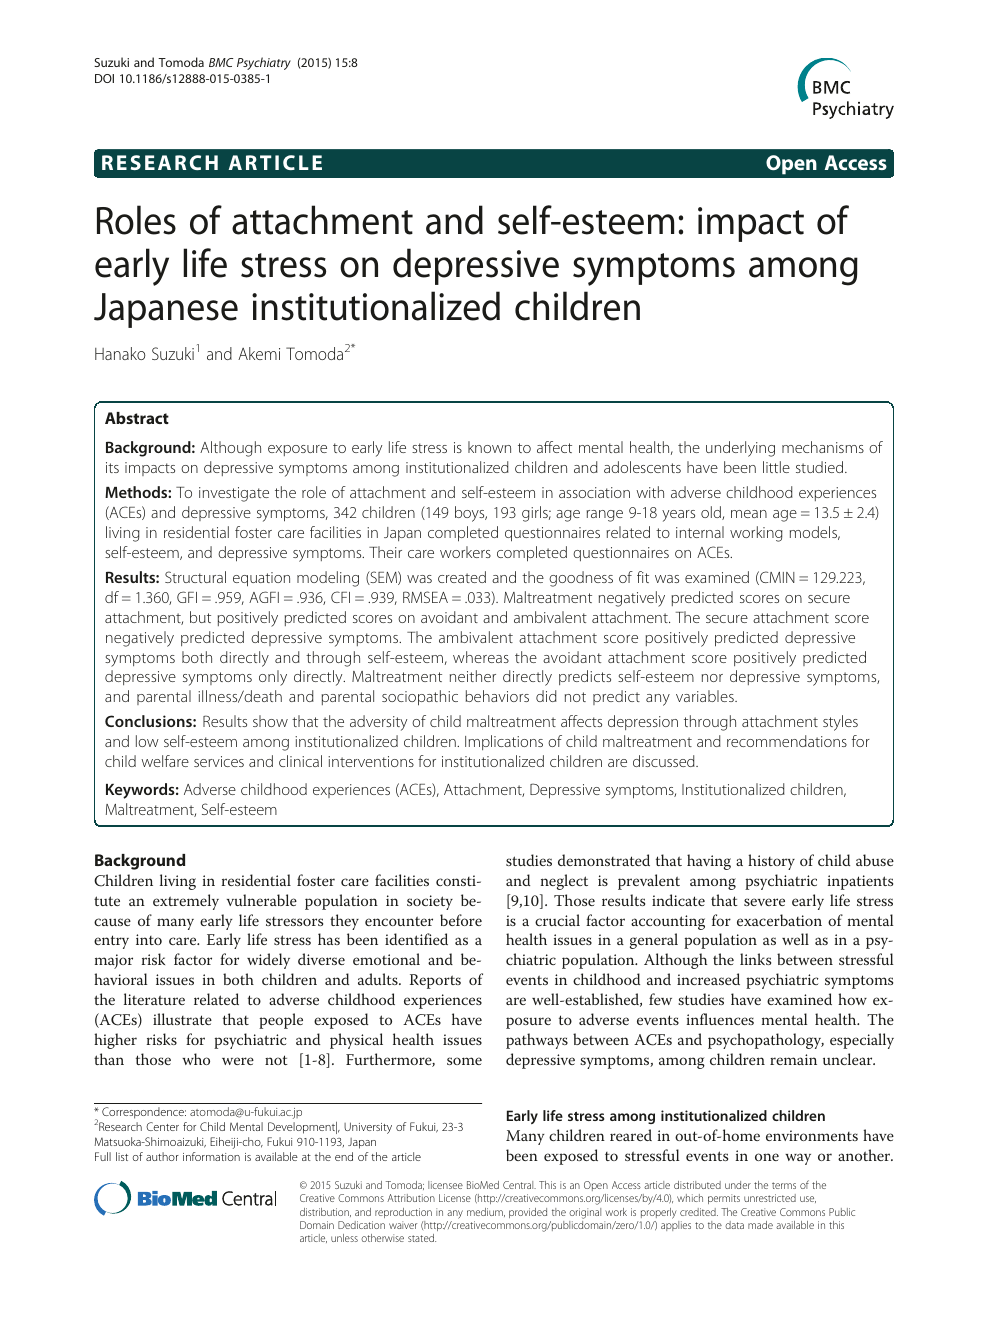 Roles of attachment and self-esteem: impact of early life